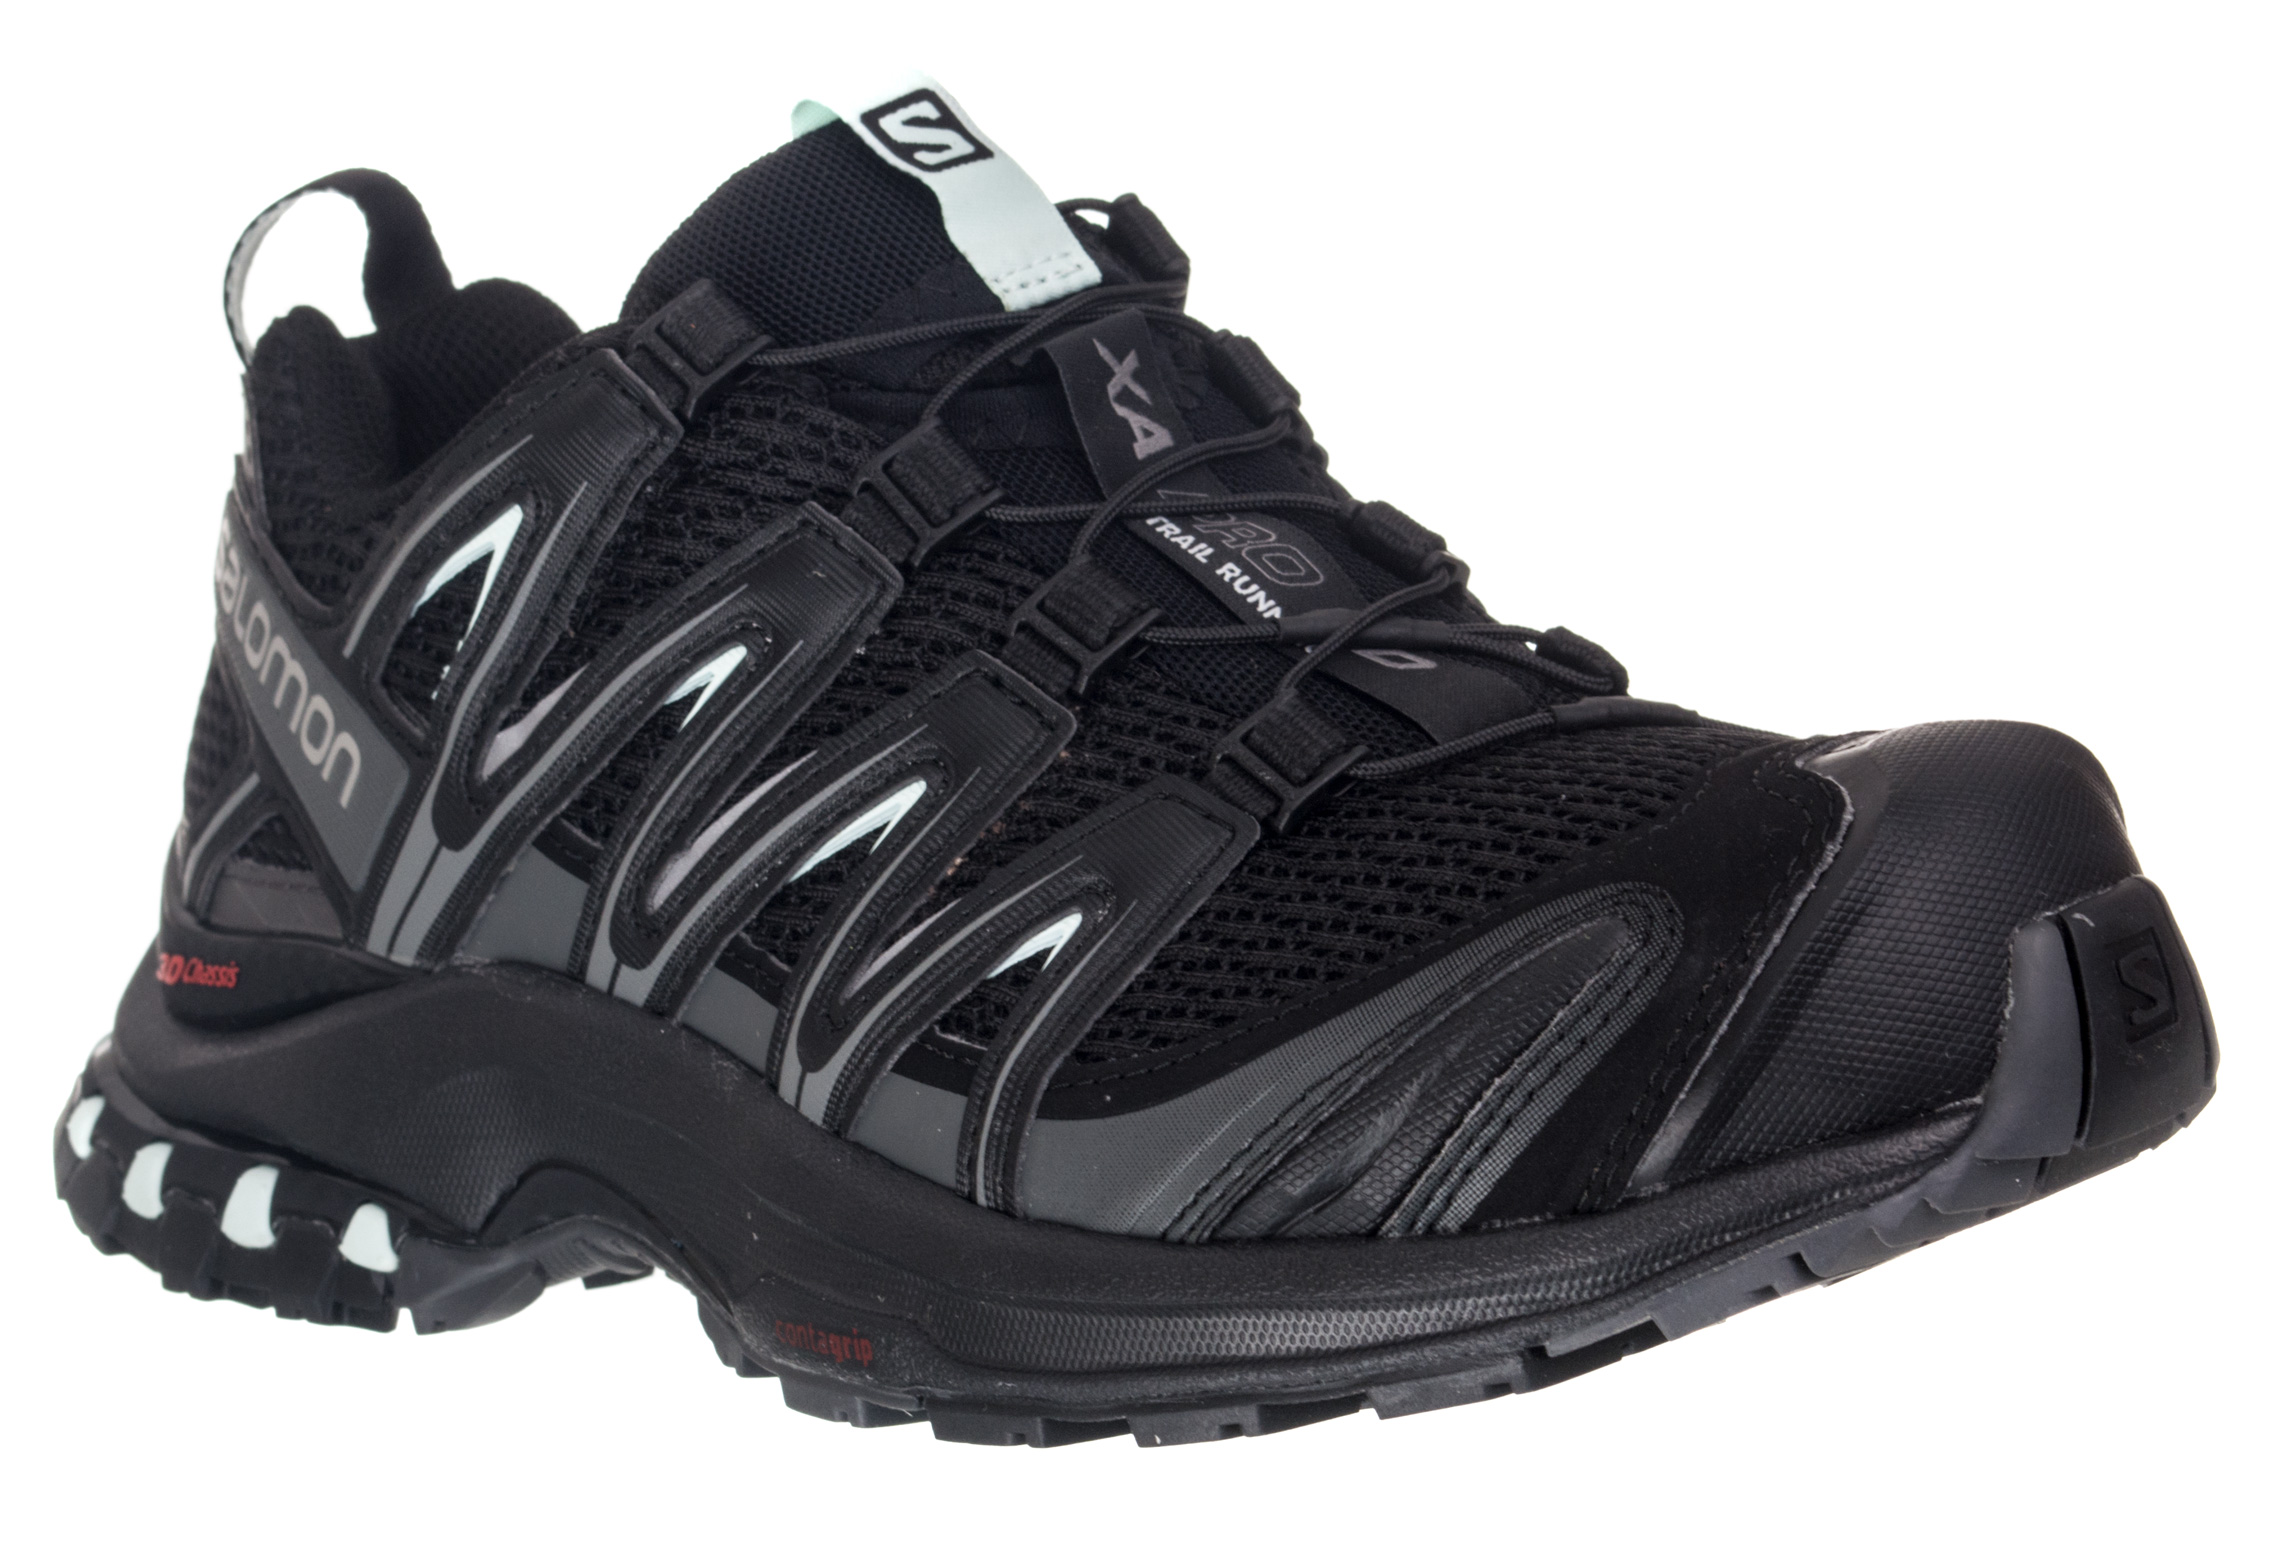 Black Salomon 3d Pro Shoes Blue Women Xa DI29EH